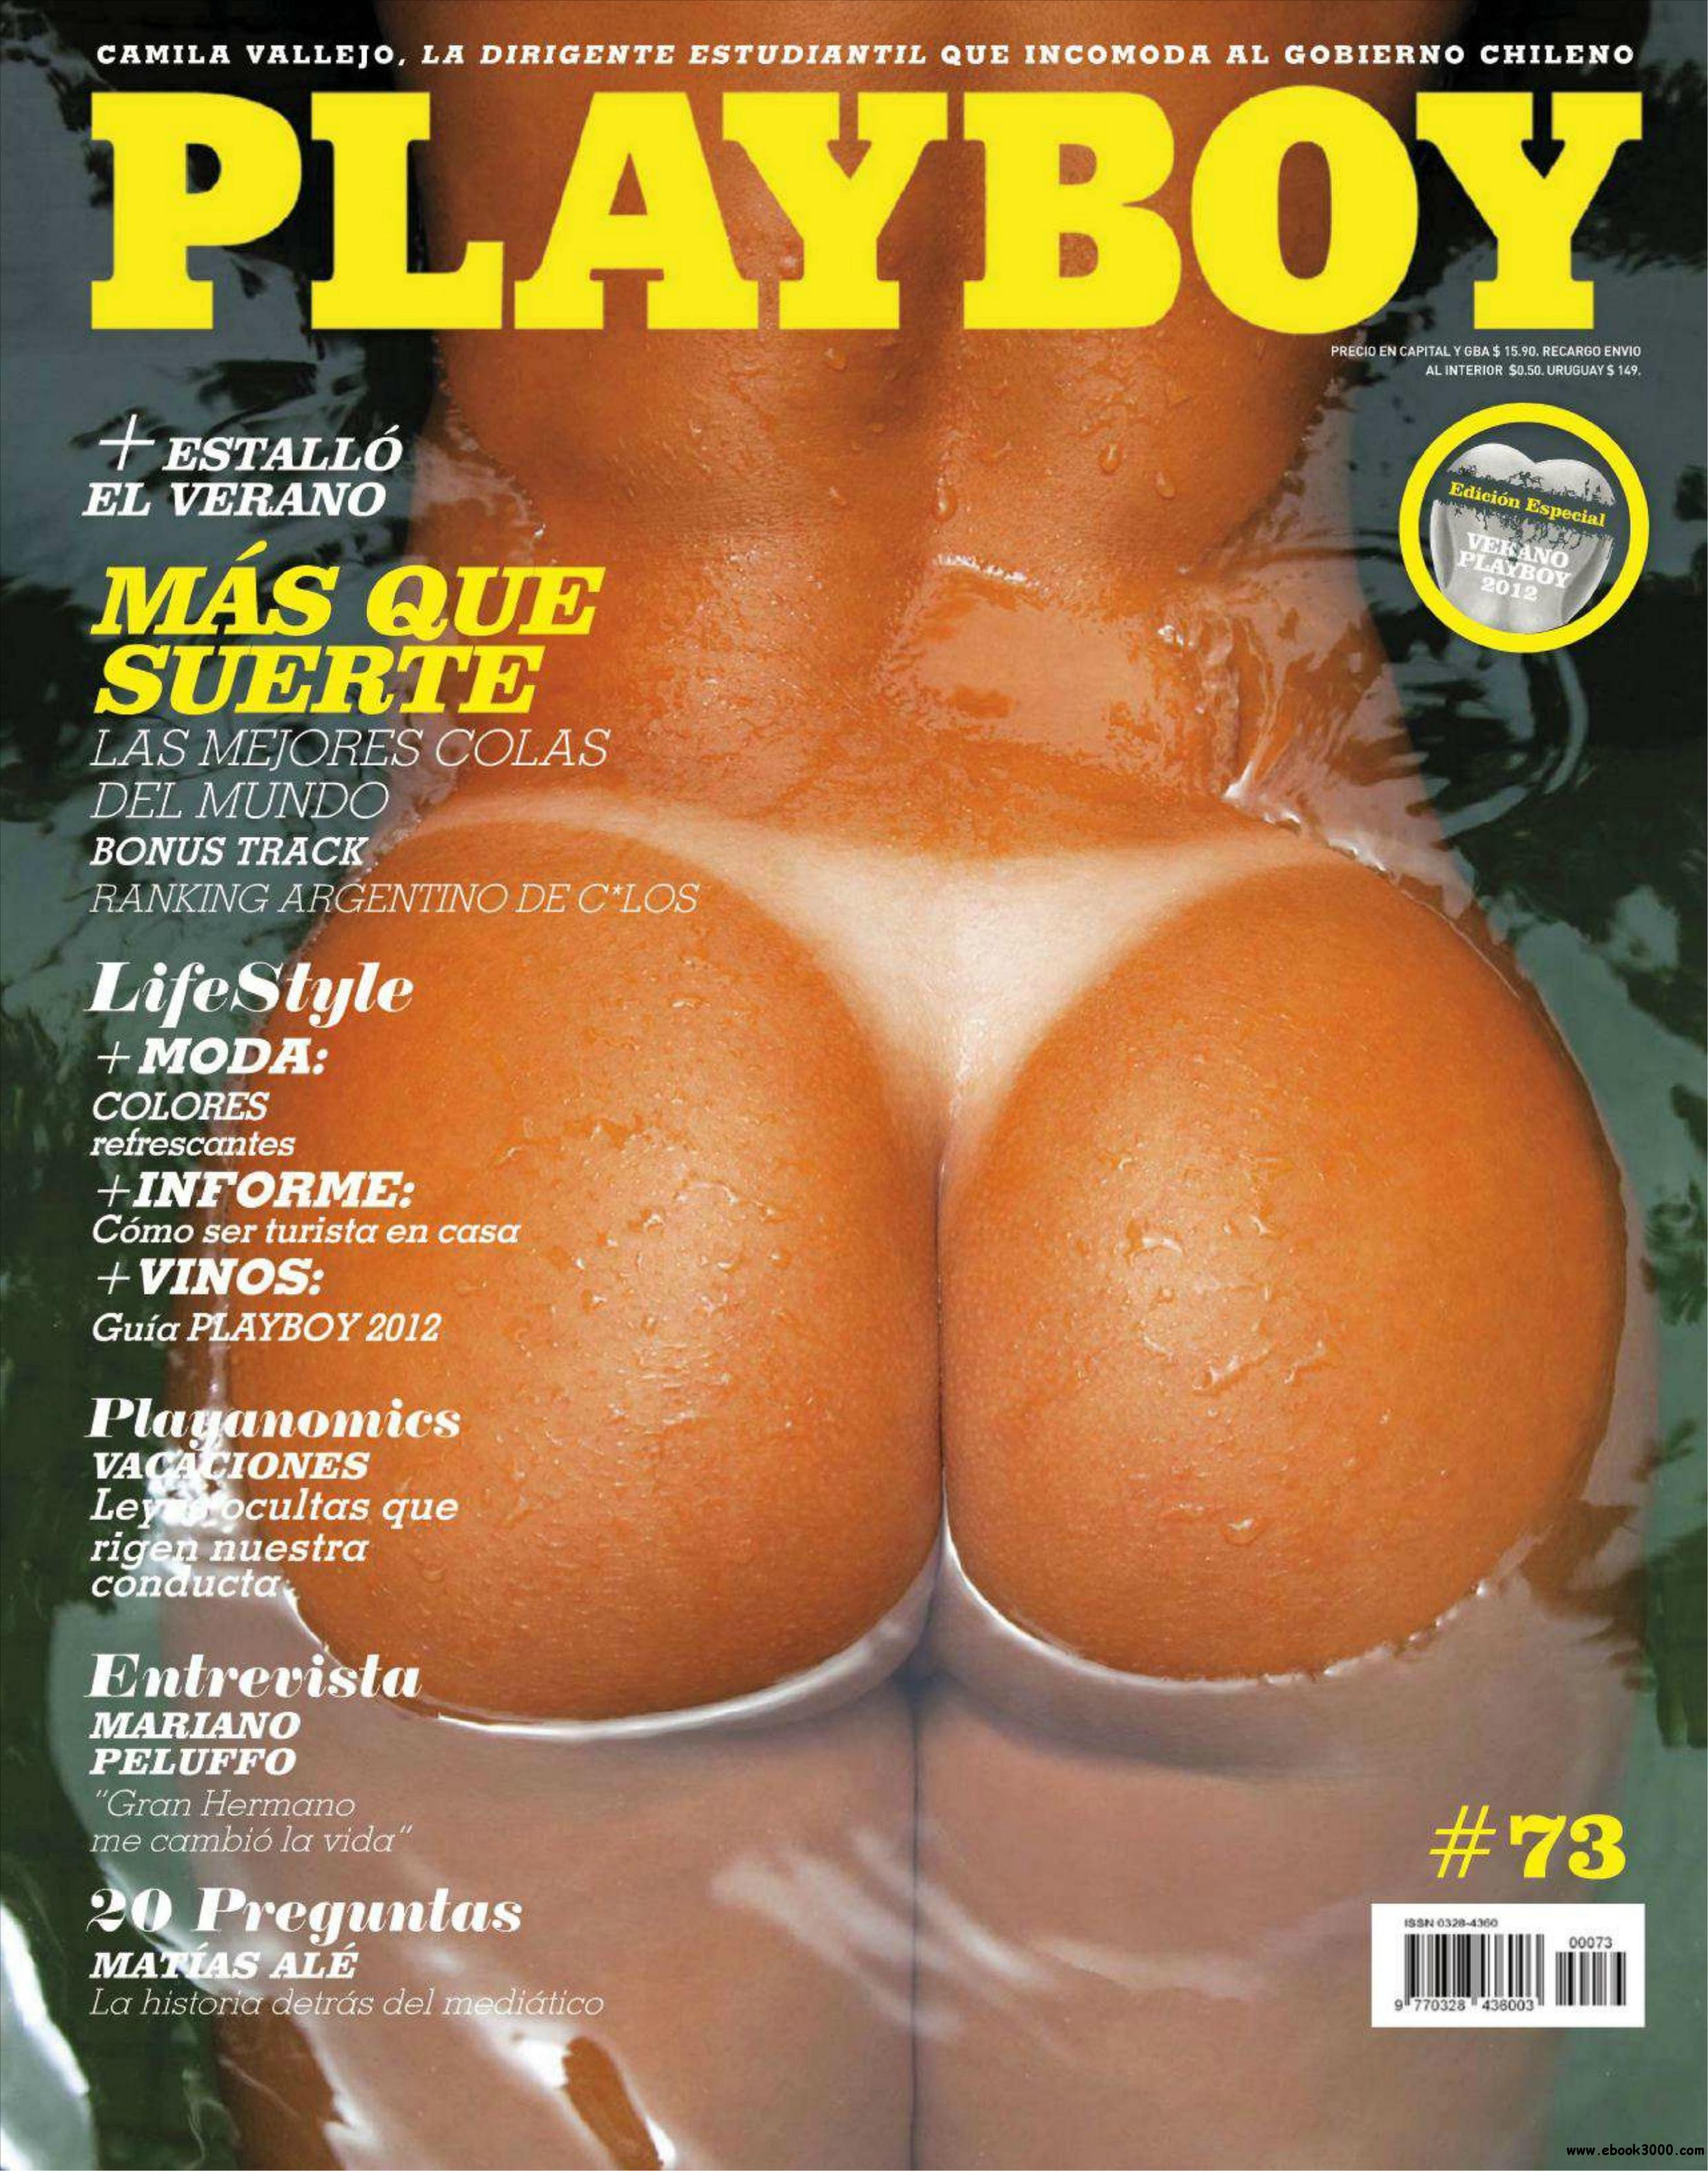 Playboy Argentina - January 2012 free download